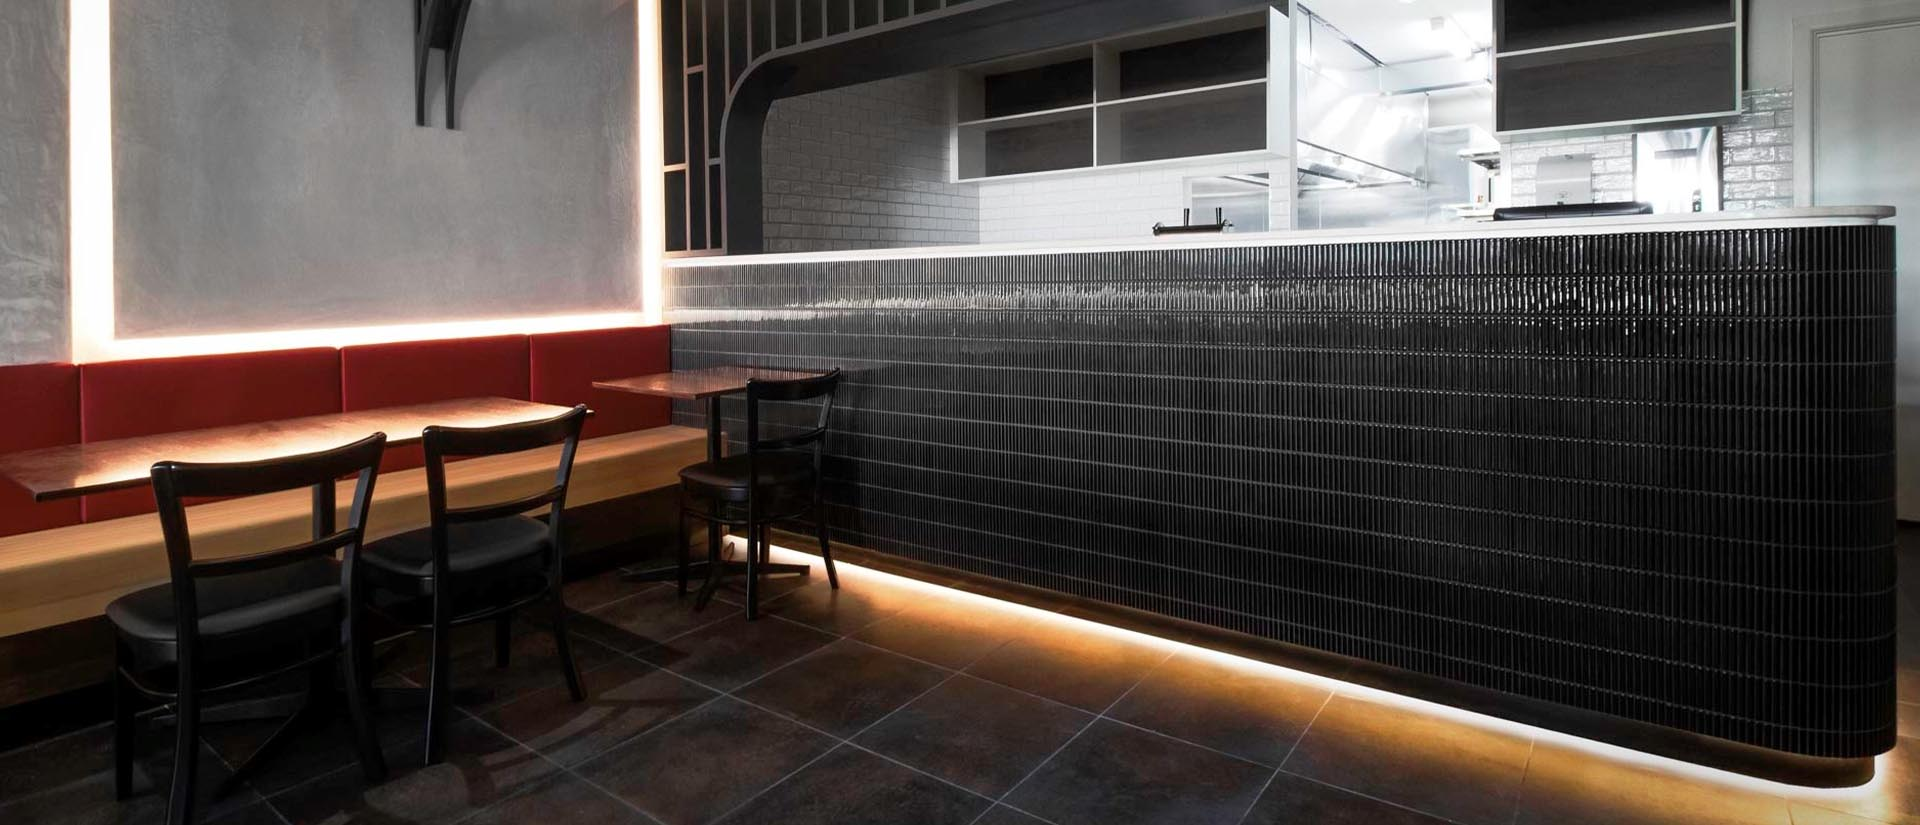 Projects-Restaurant_East Alley-5